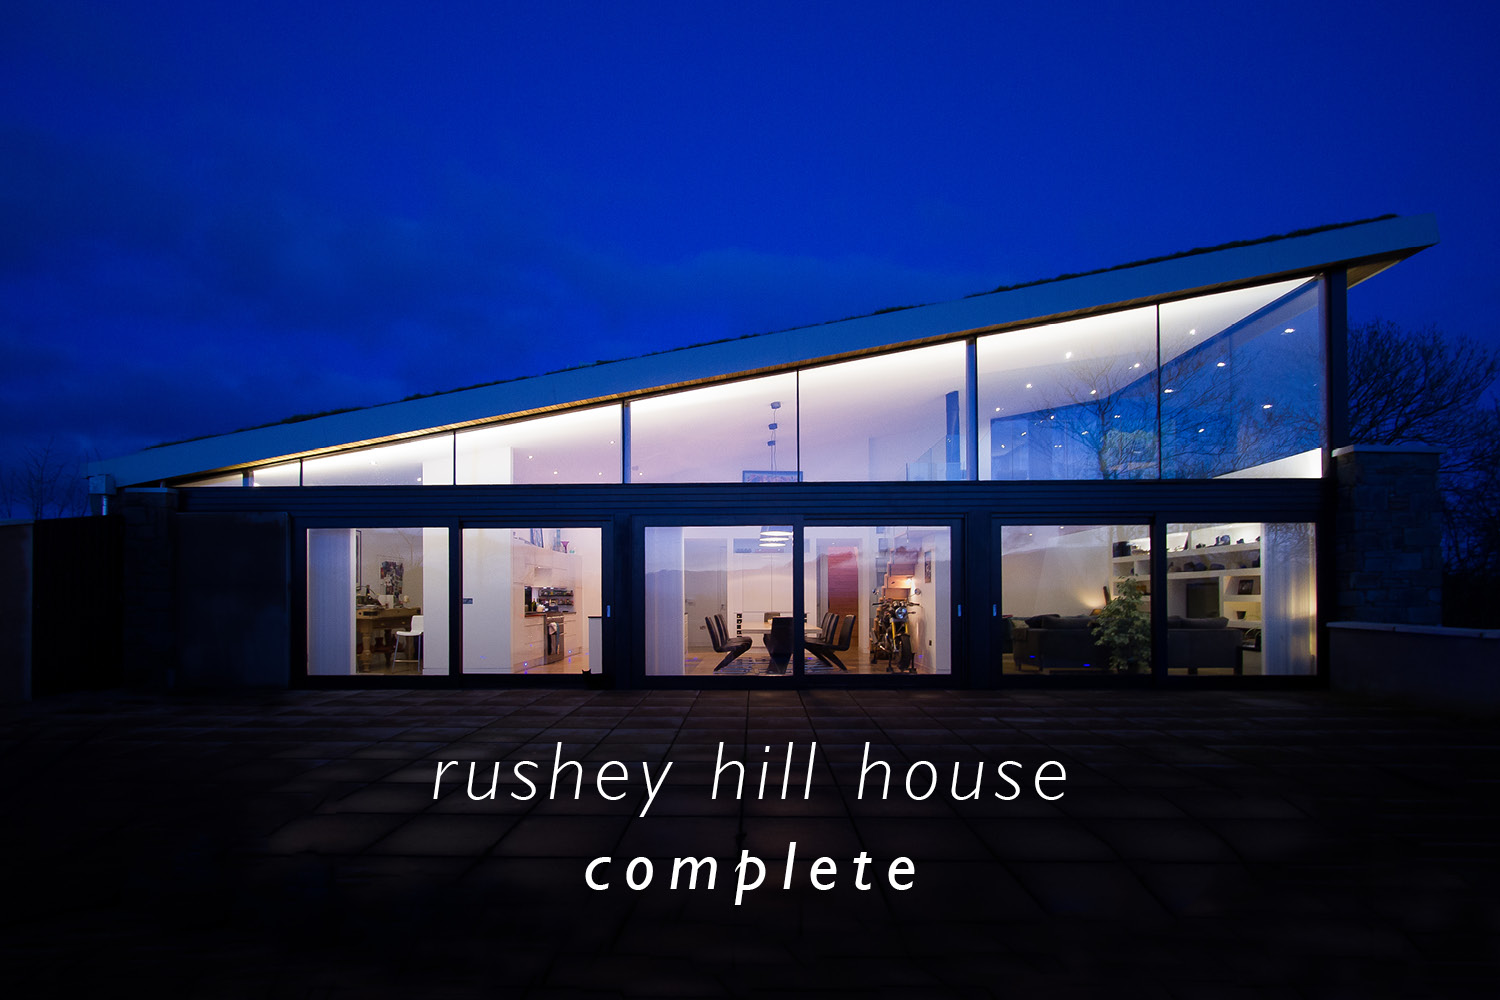 rushey hill house.jpg